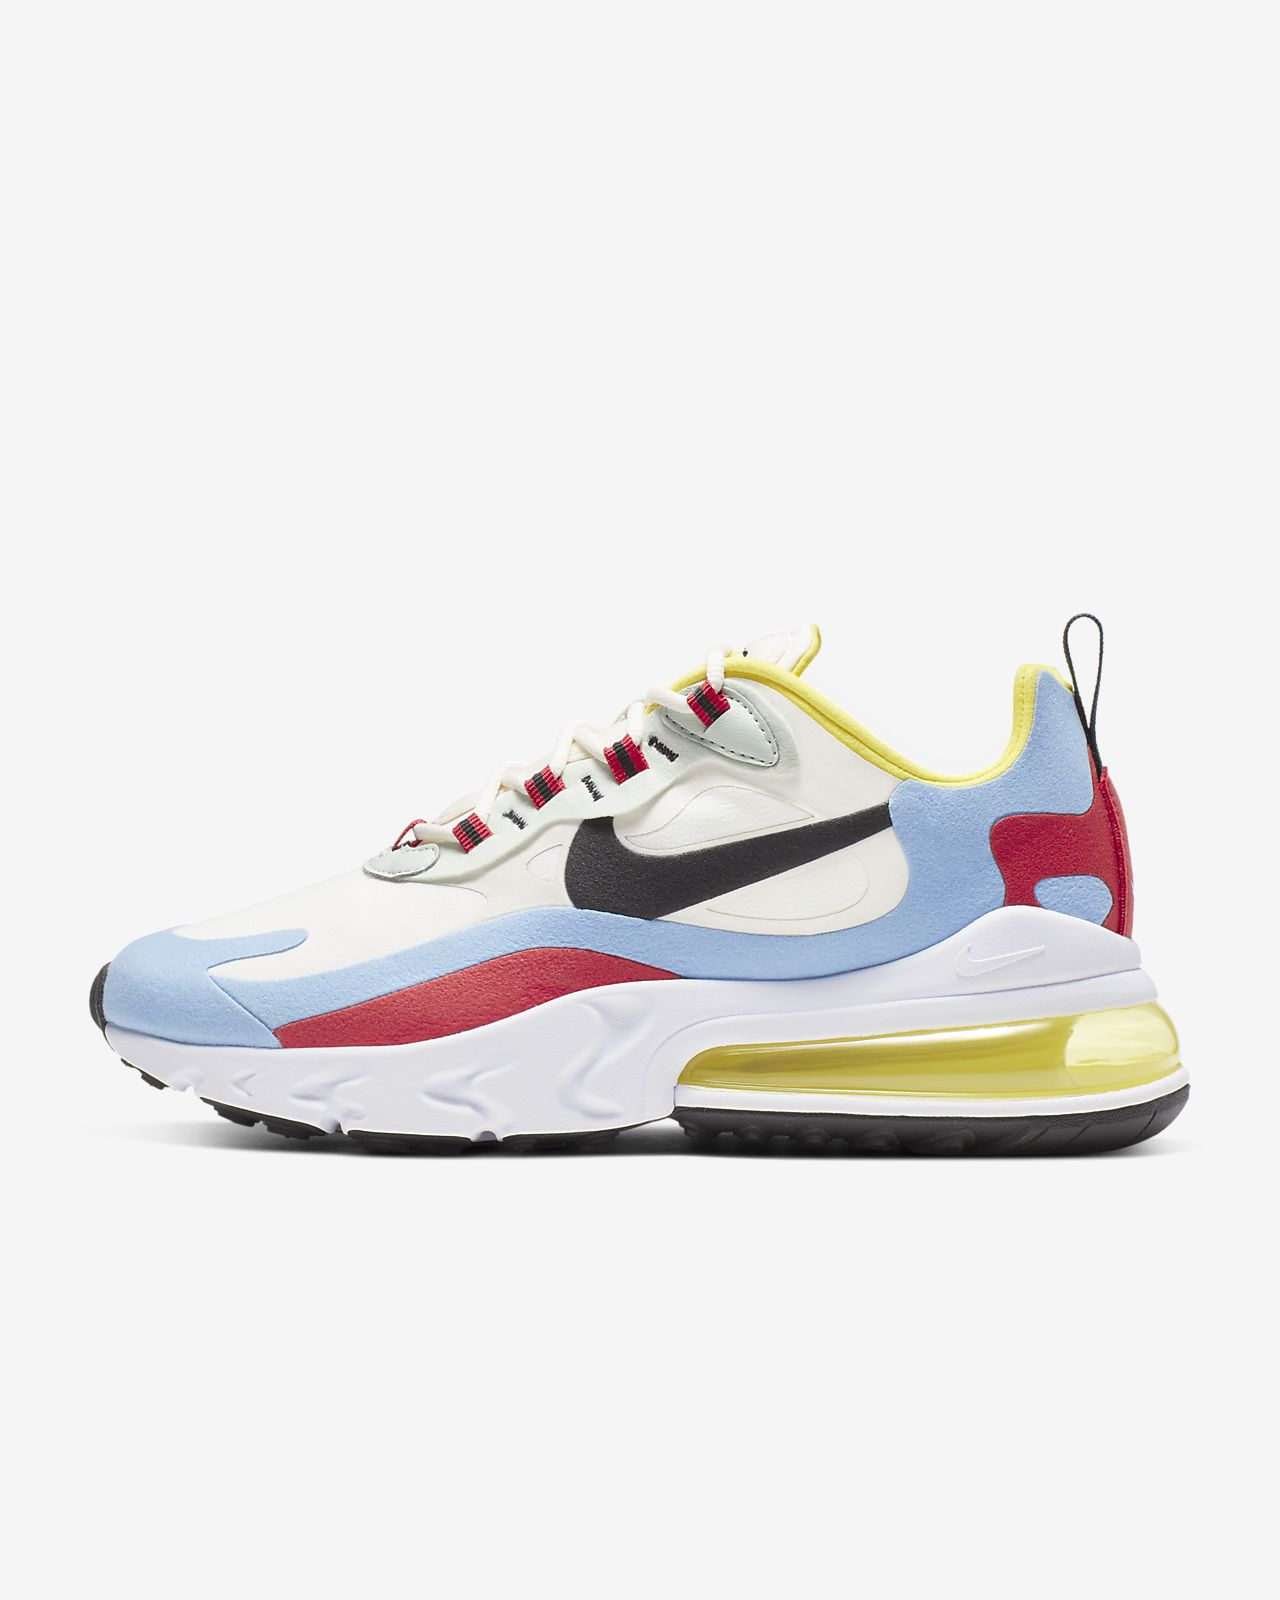 Nike Air Max 270 React (Bauhaus) Damenschuh